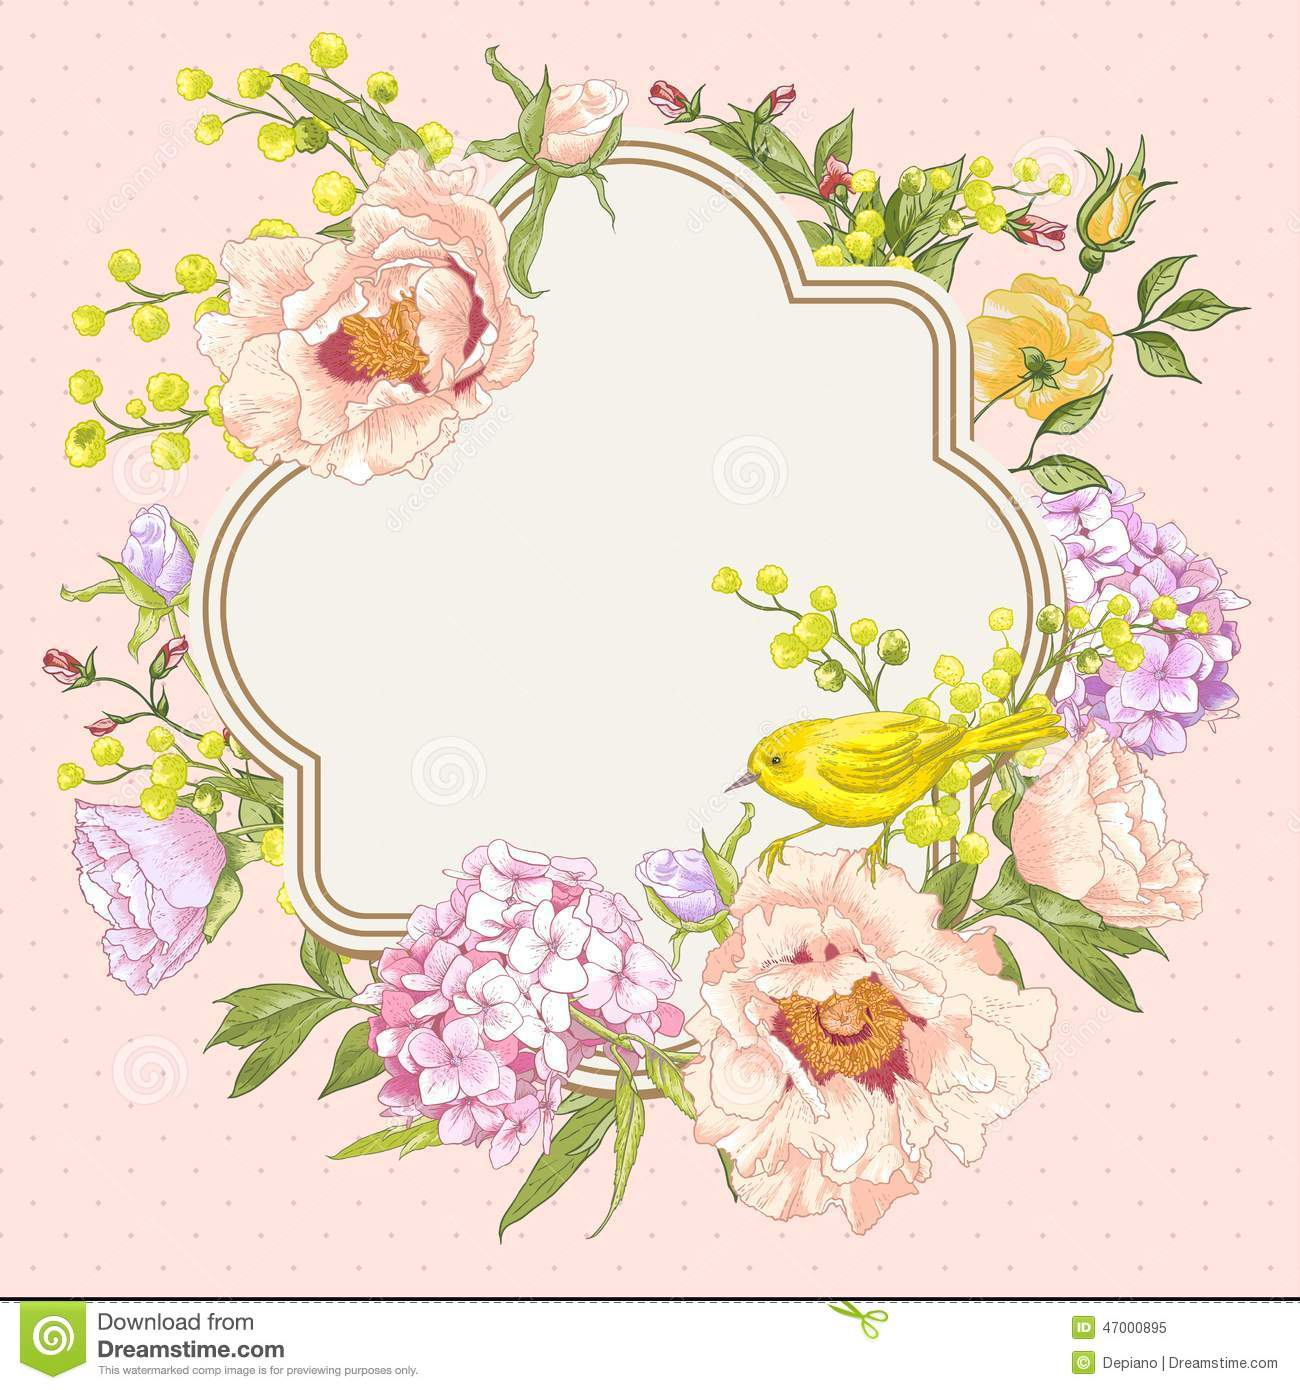 spring vintage floral bouquet with birds stock vector hydrangea clip art images hydrangea clip art free images